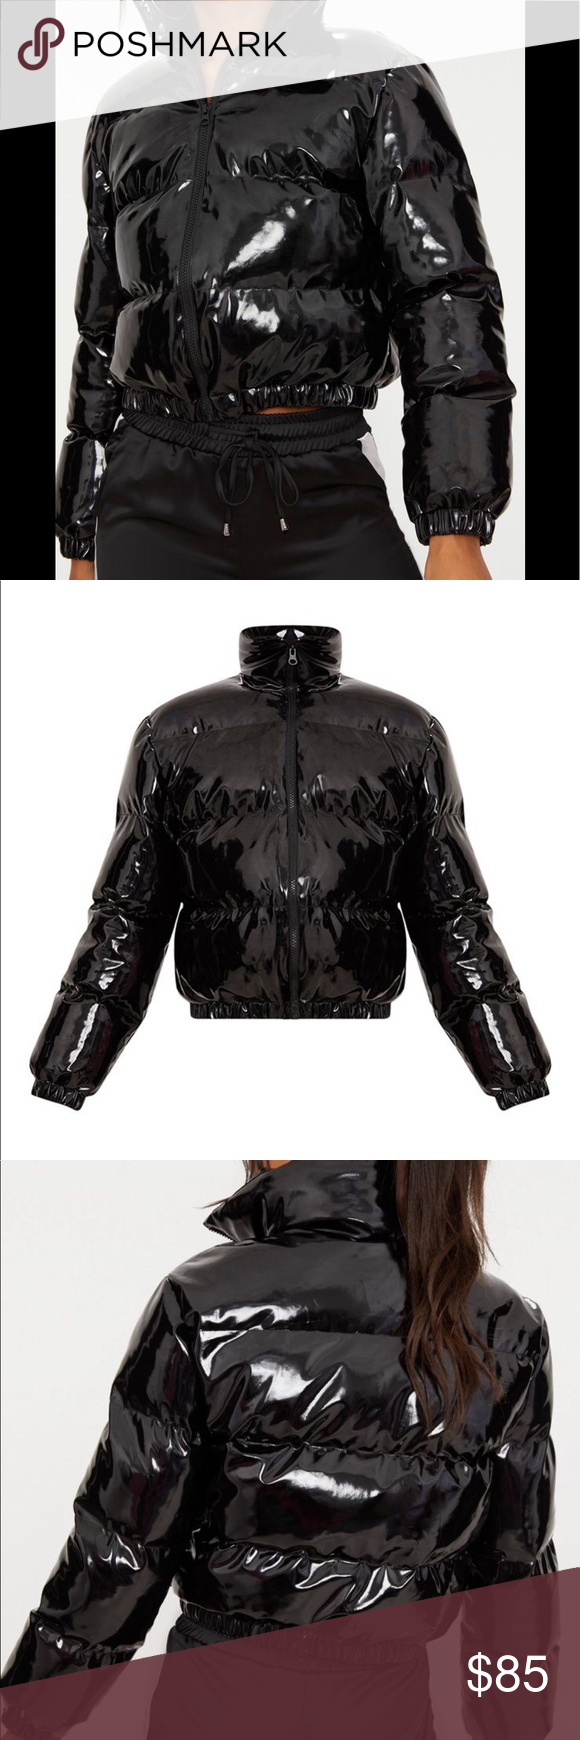 Cropped Shiny Pvc Cropped Puffer Size 2 Very Thick Black Pvc Shiny Cropped Zip Front Puffer Jacket Nwt Prettyl Clothes Design Women Shopping Jackets For Women [ 1740 x 580 Pixel ]